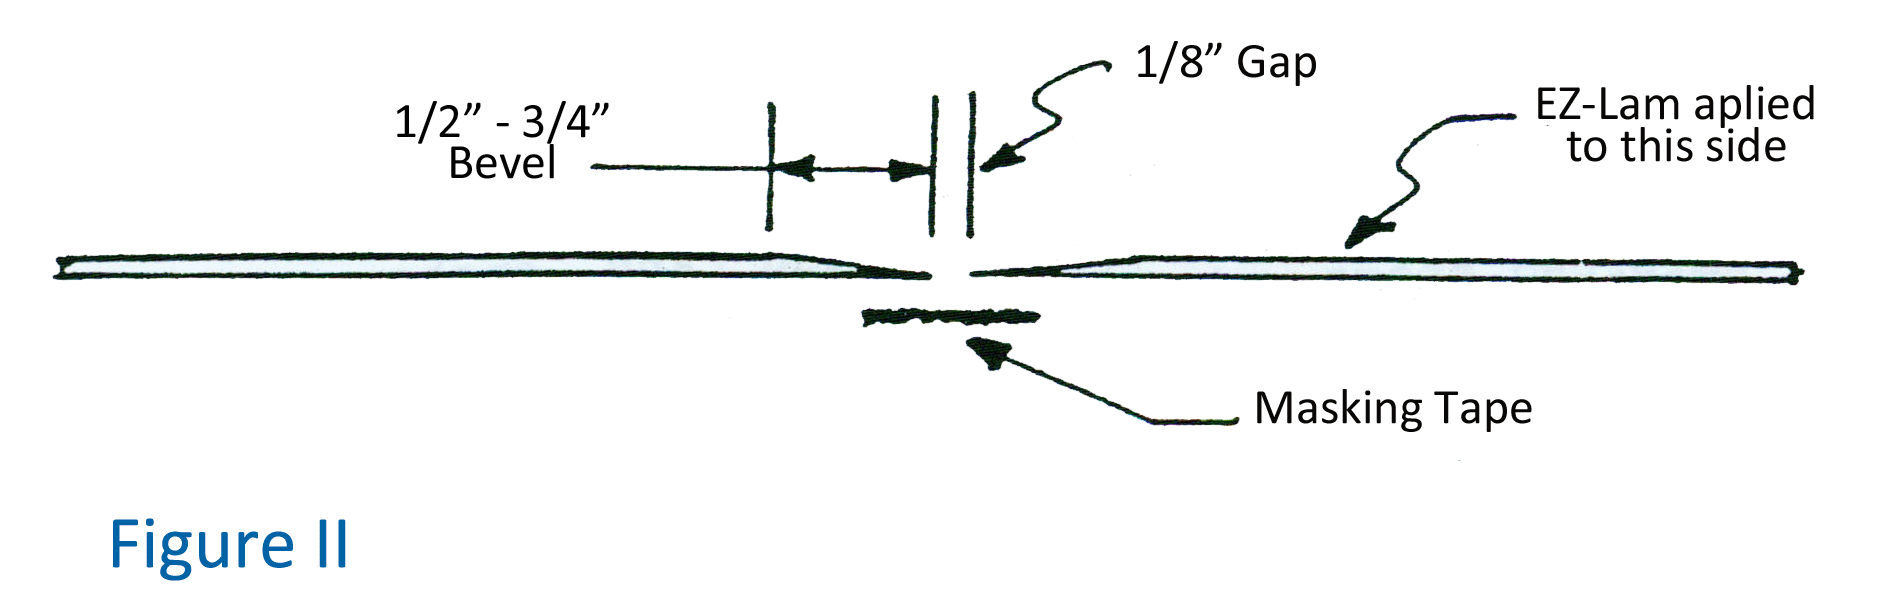 Figure II of Sheeting Wings with Balsa or Obeechi